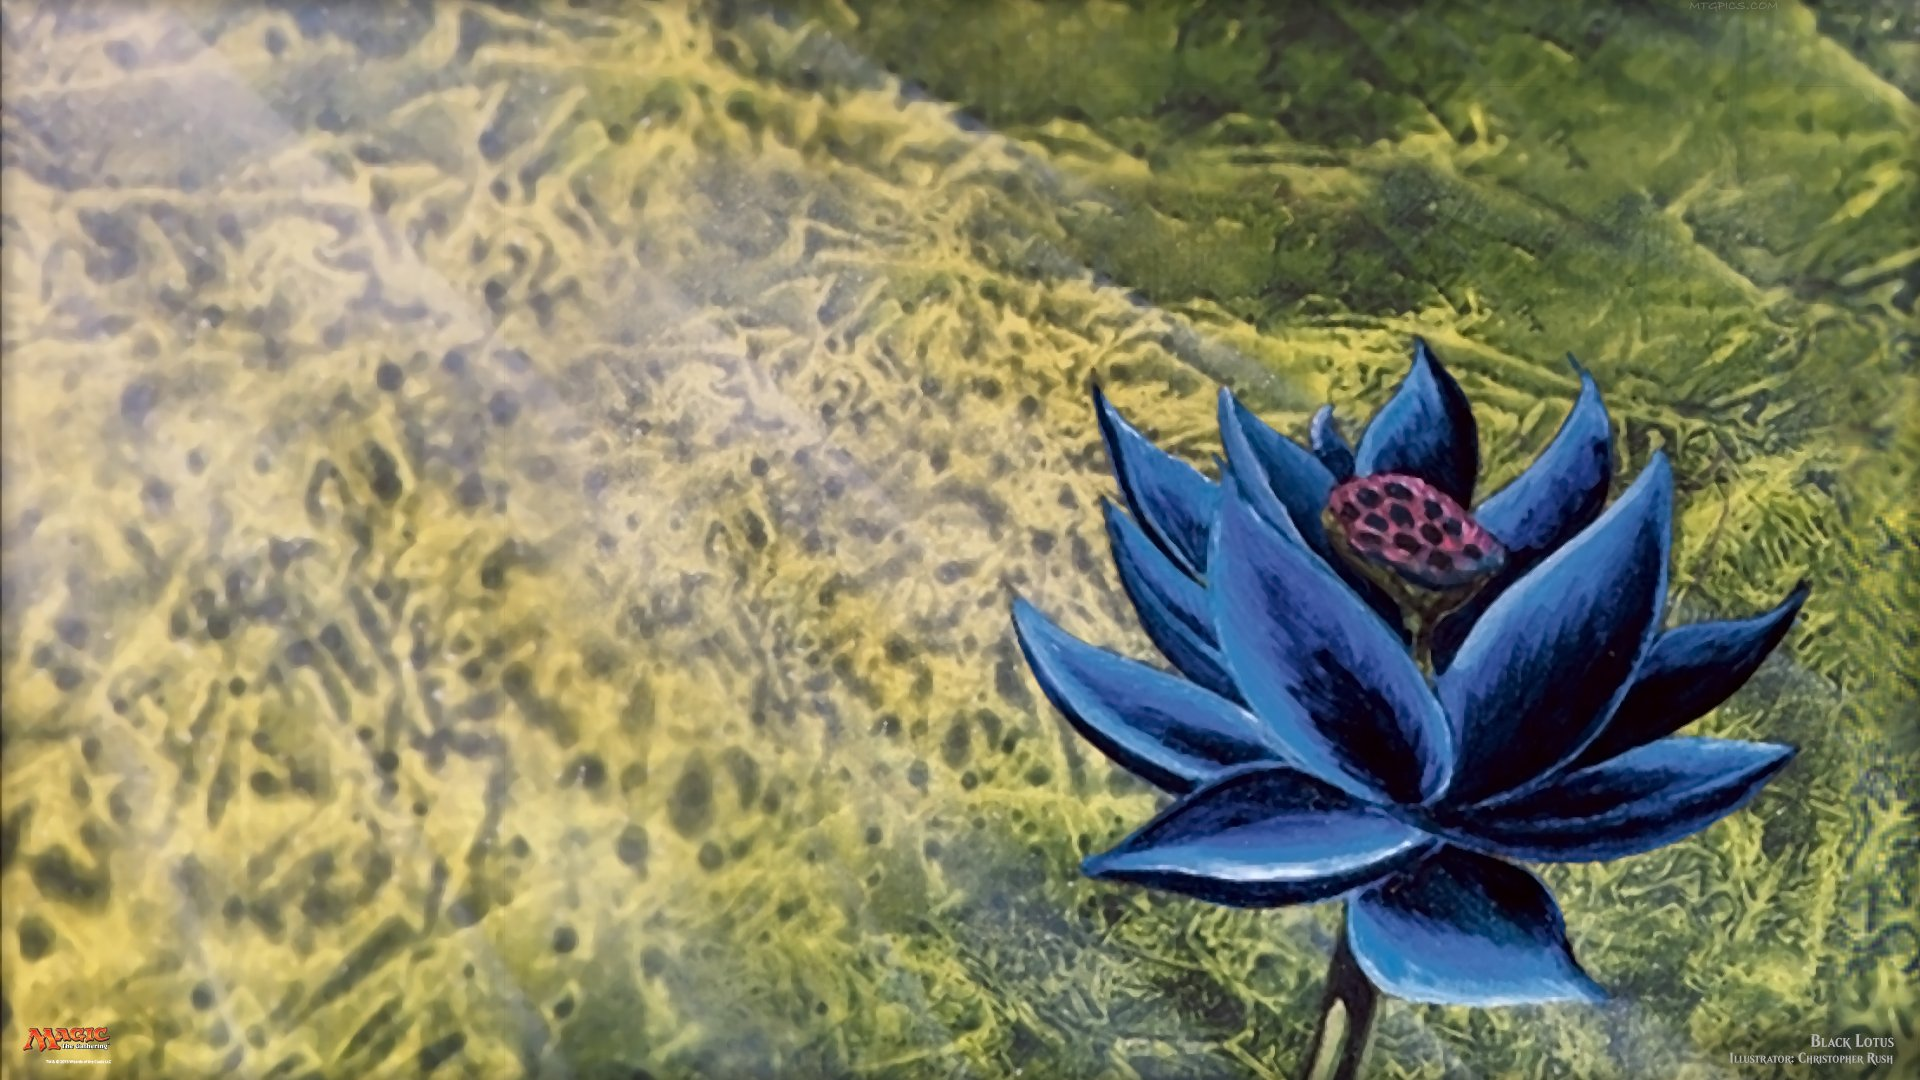 Black Lotus (Limited Alpha) | Illustration by Christopher Rush